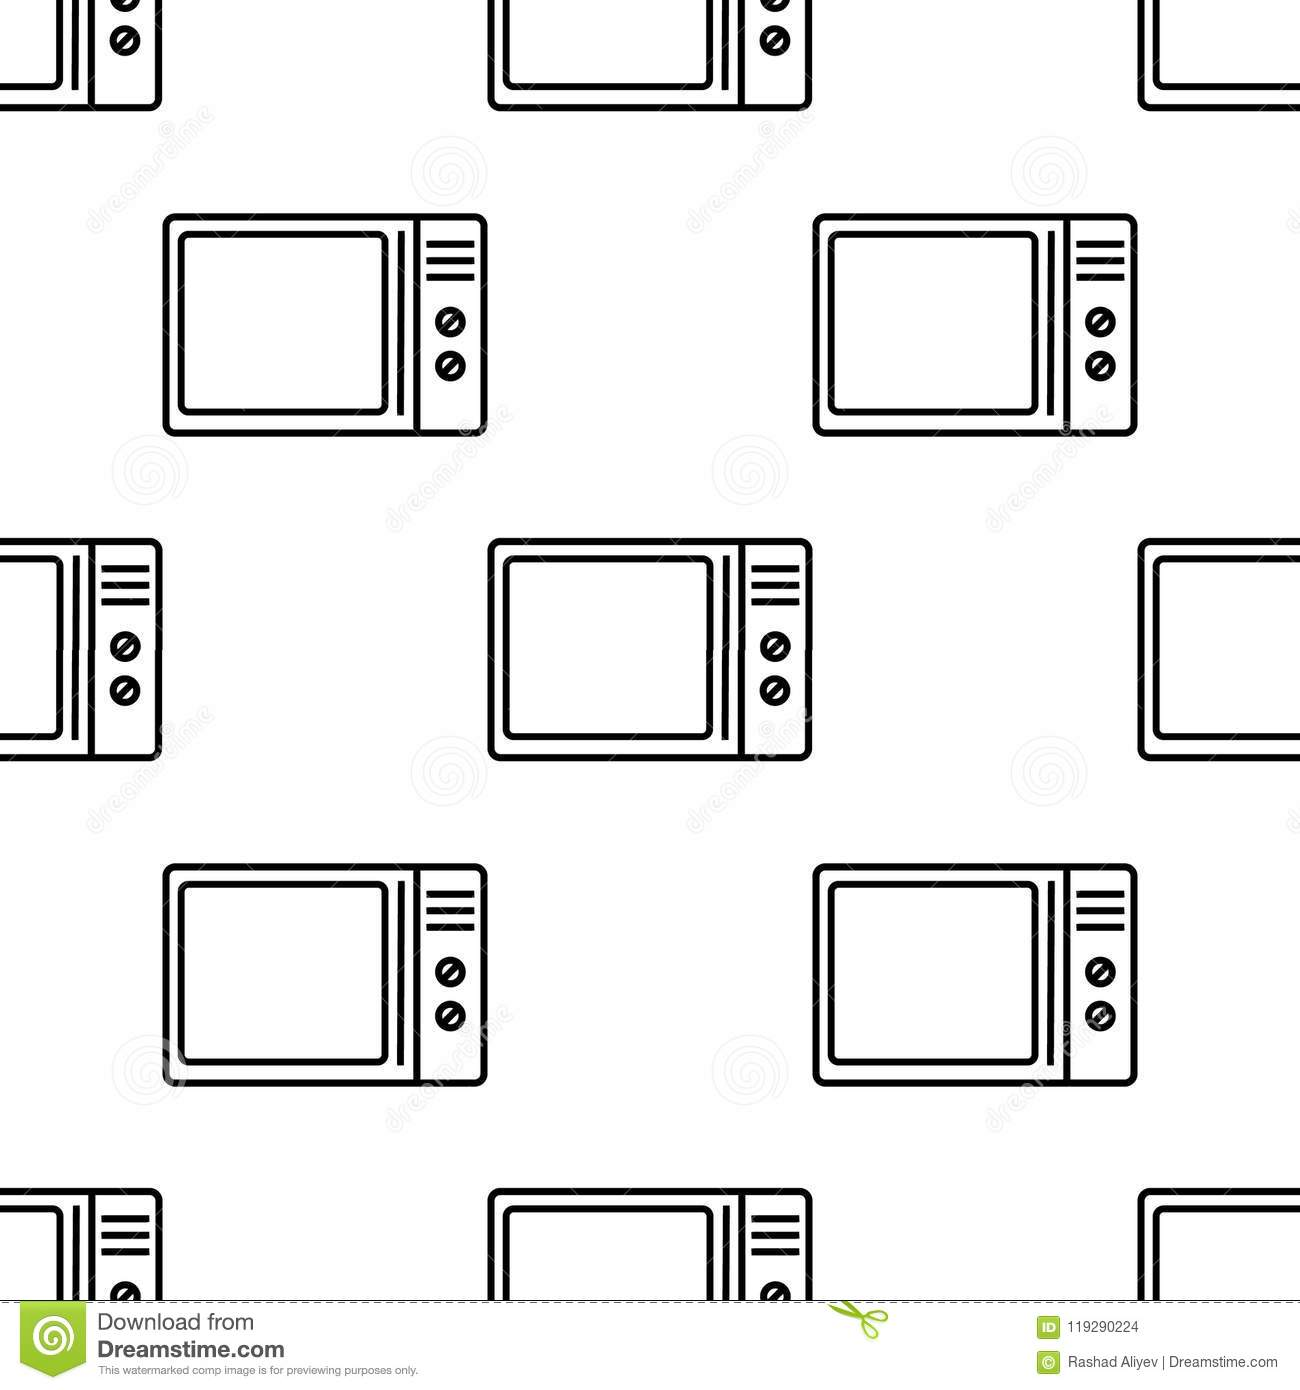 Microwave Icon. Element Of Appliances Icon For Mobile